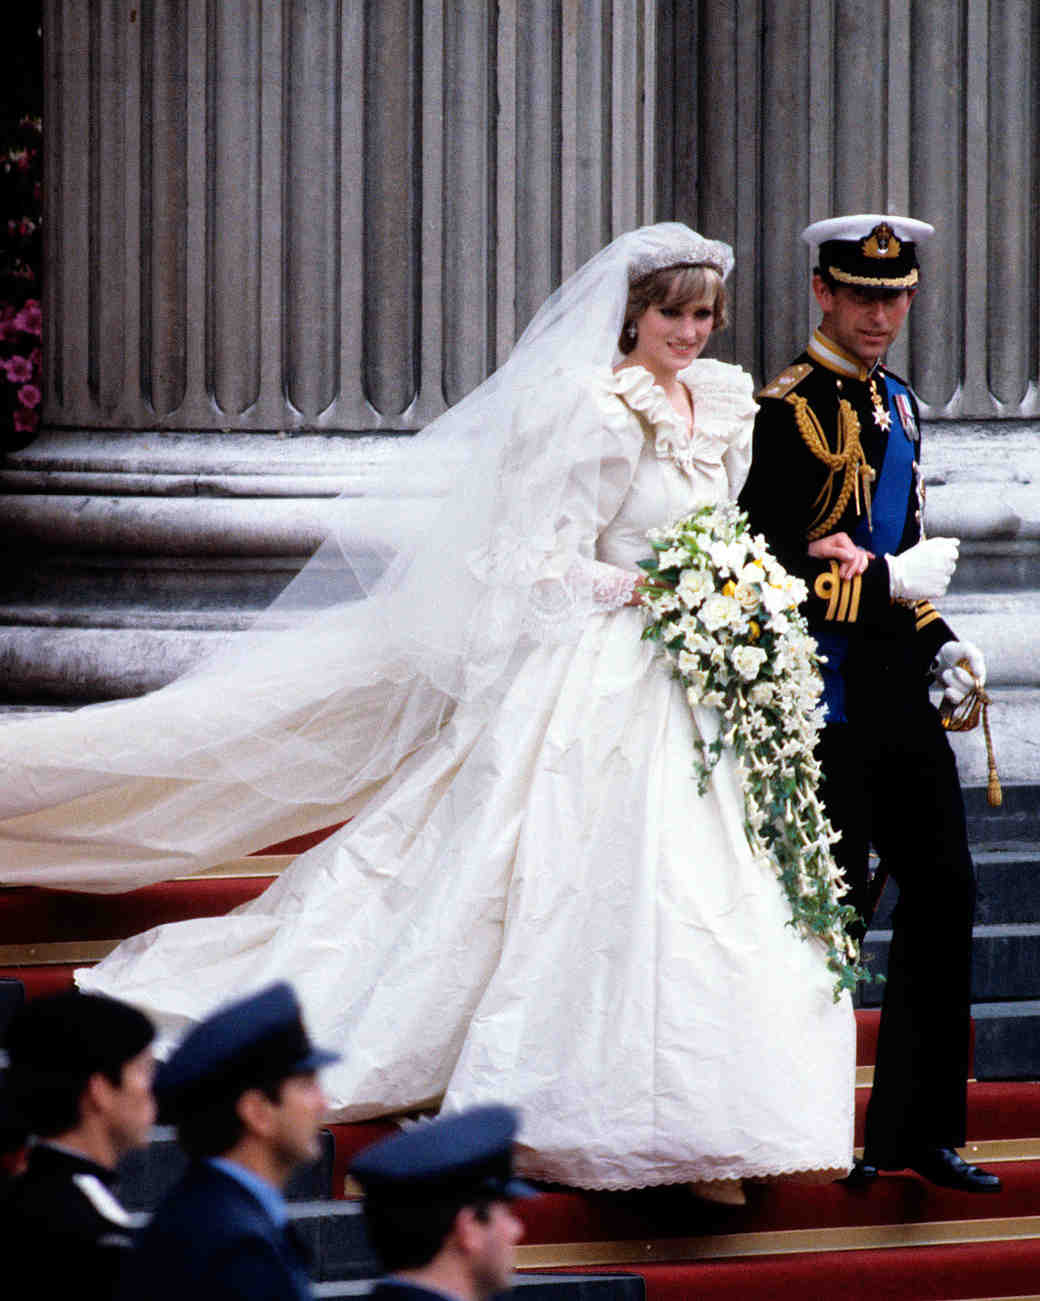 Princess Diana at her wedding to Prince Charles.